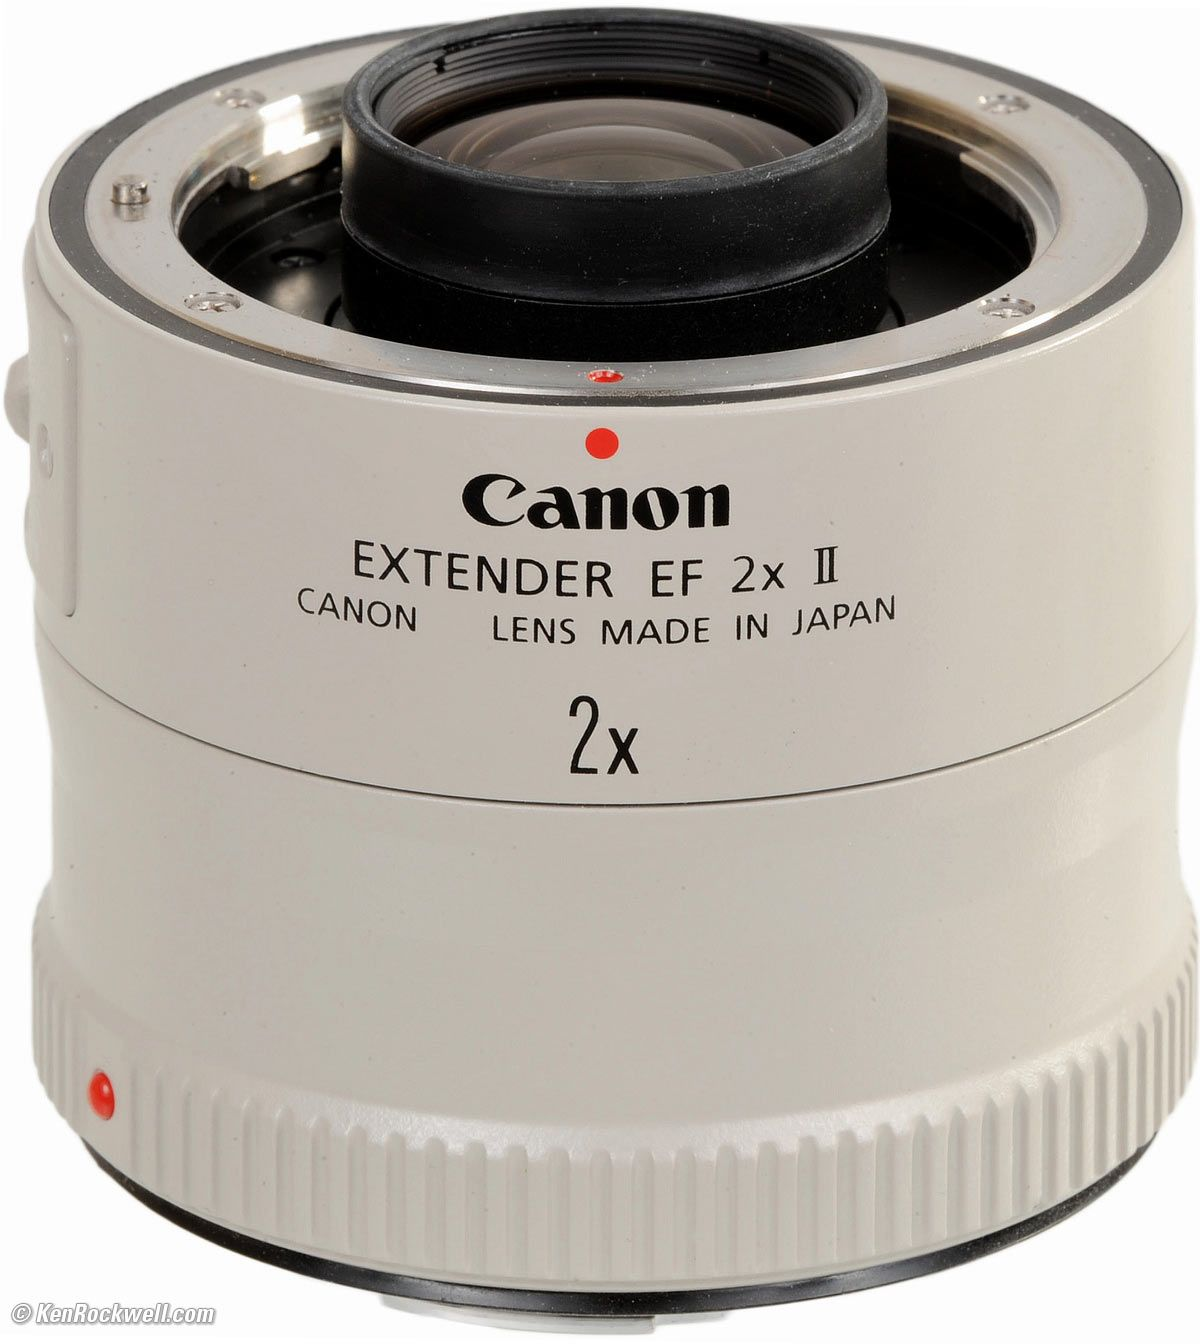 Canon Extender 2x II (2001-2010) (Full-frame, 1.3x and and APS-C ...